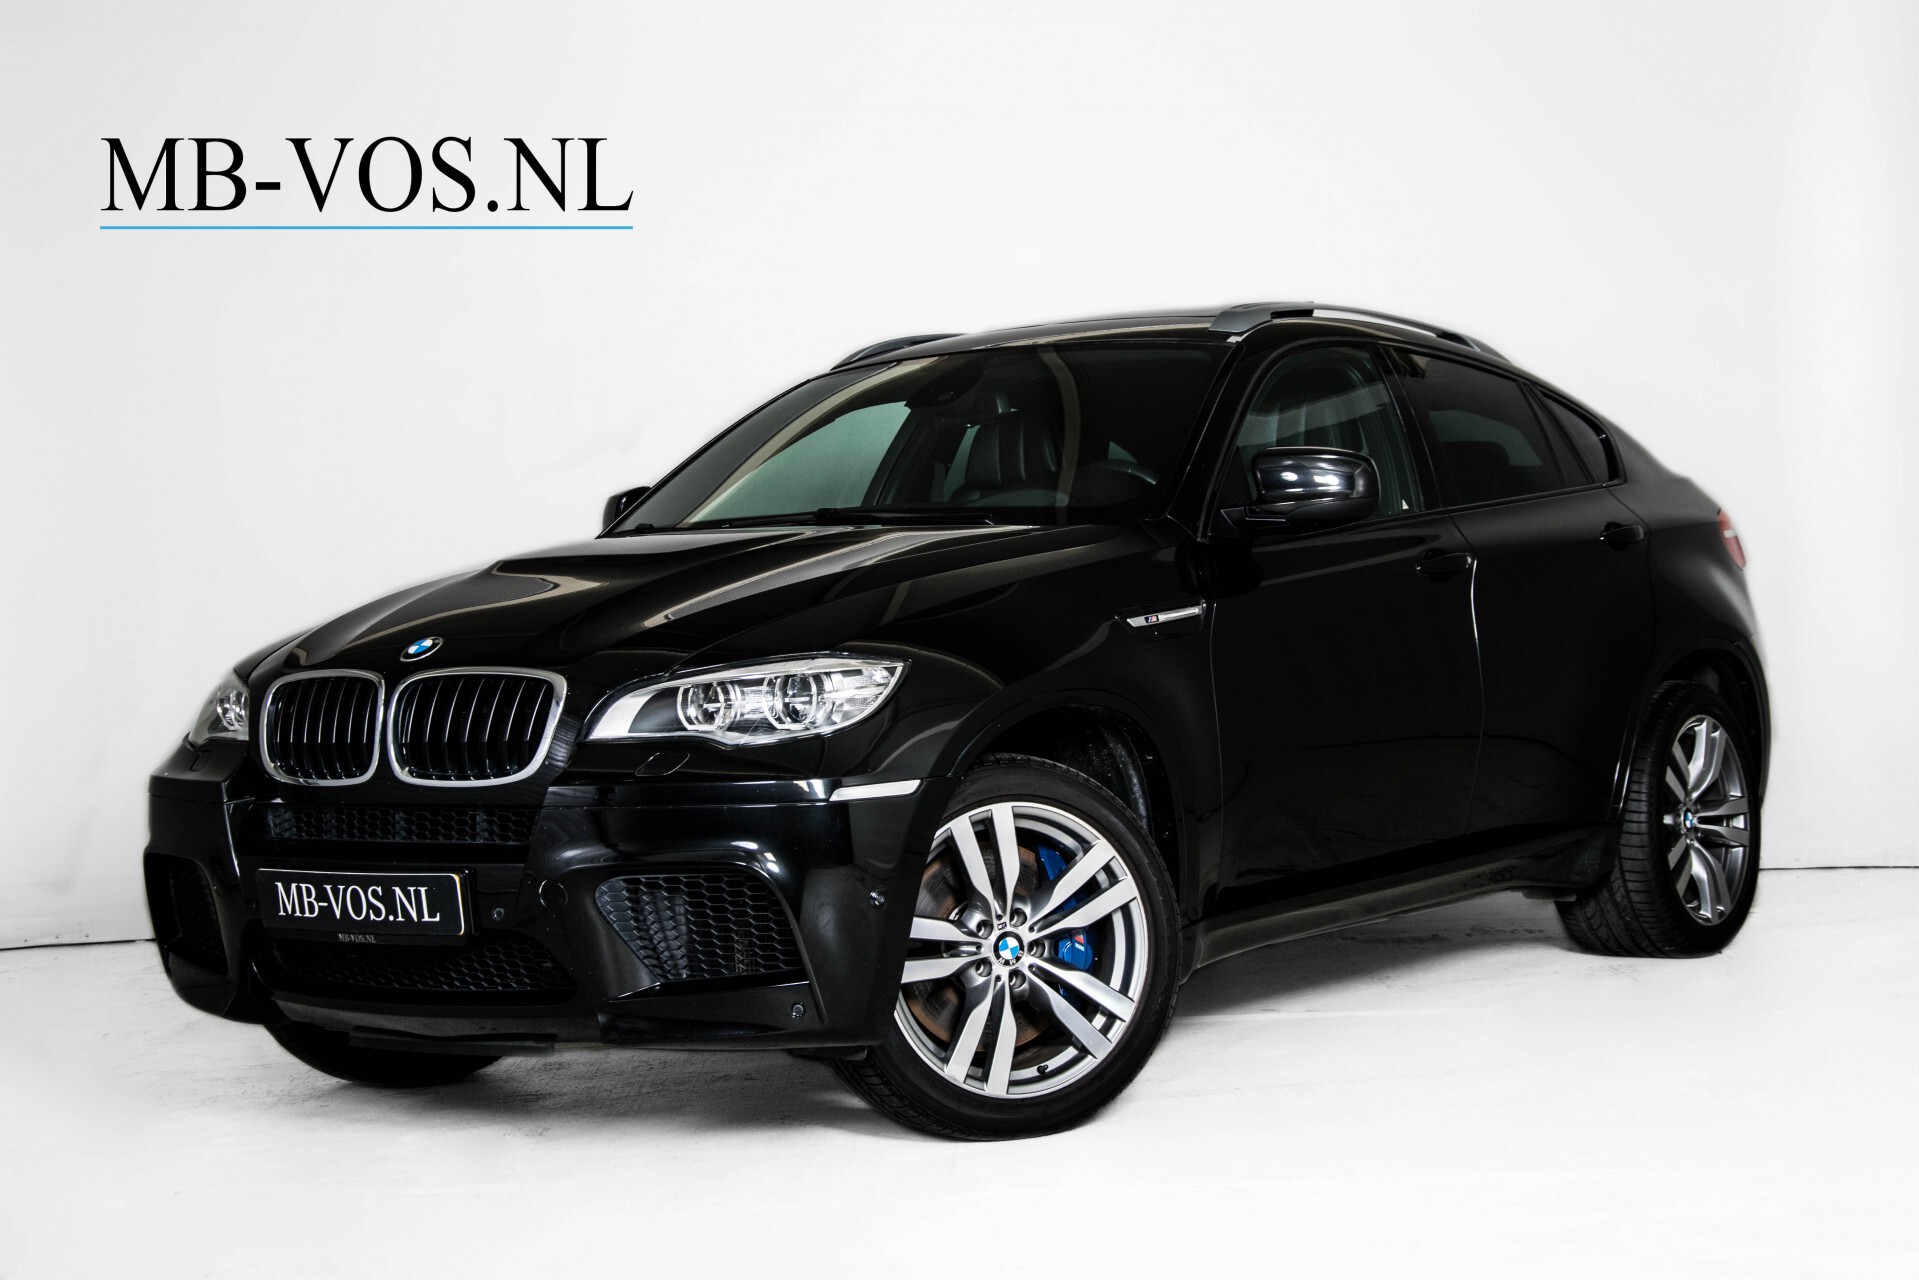 BMW X6 4.4i M Pano/Adaptive Drive/HUD/Keyless/360camera/TV/Drivers Pack/Entertainment/Shadowline Aut6 Foto 1